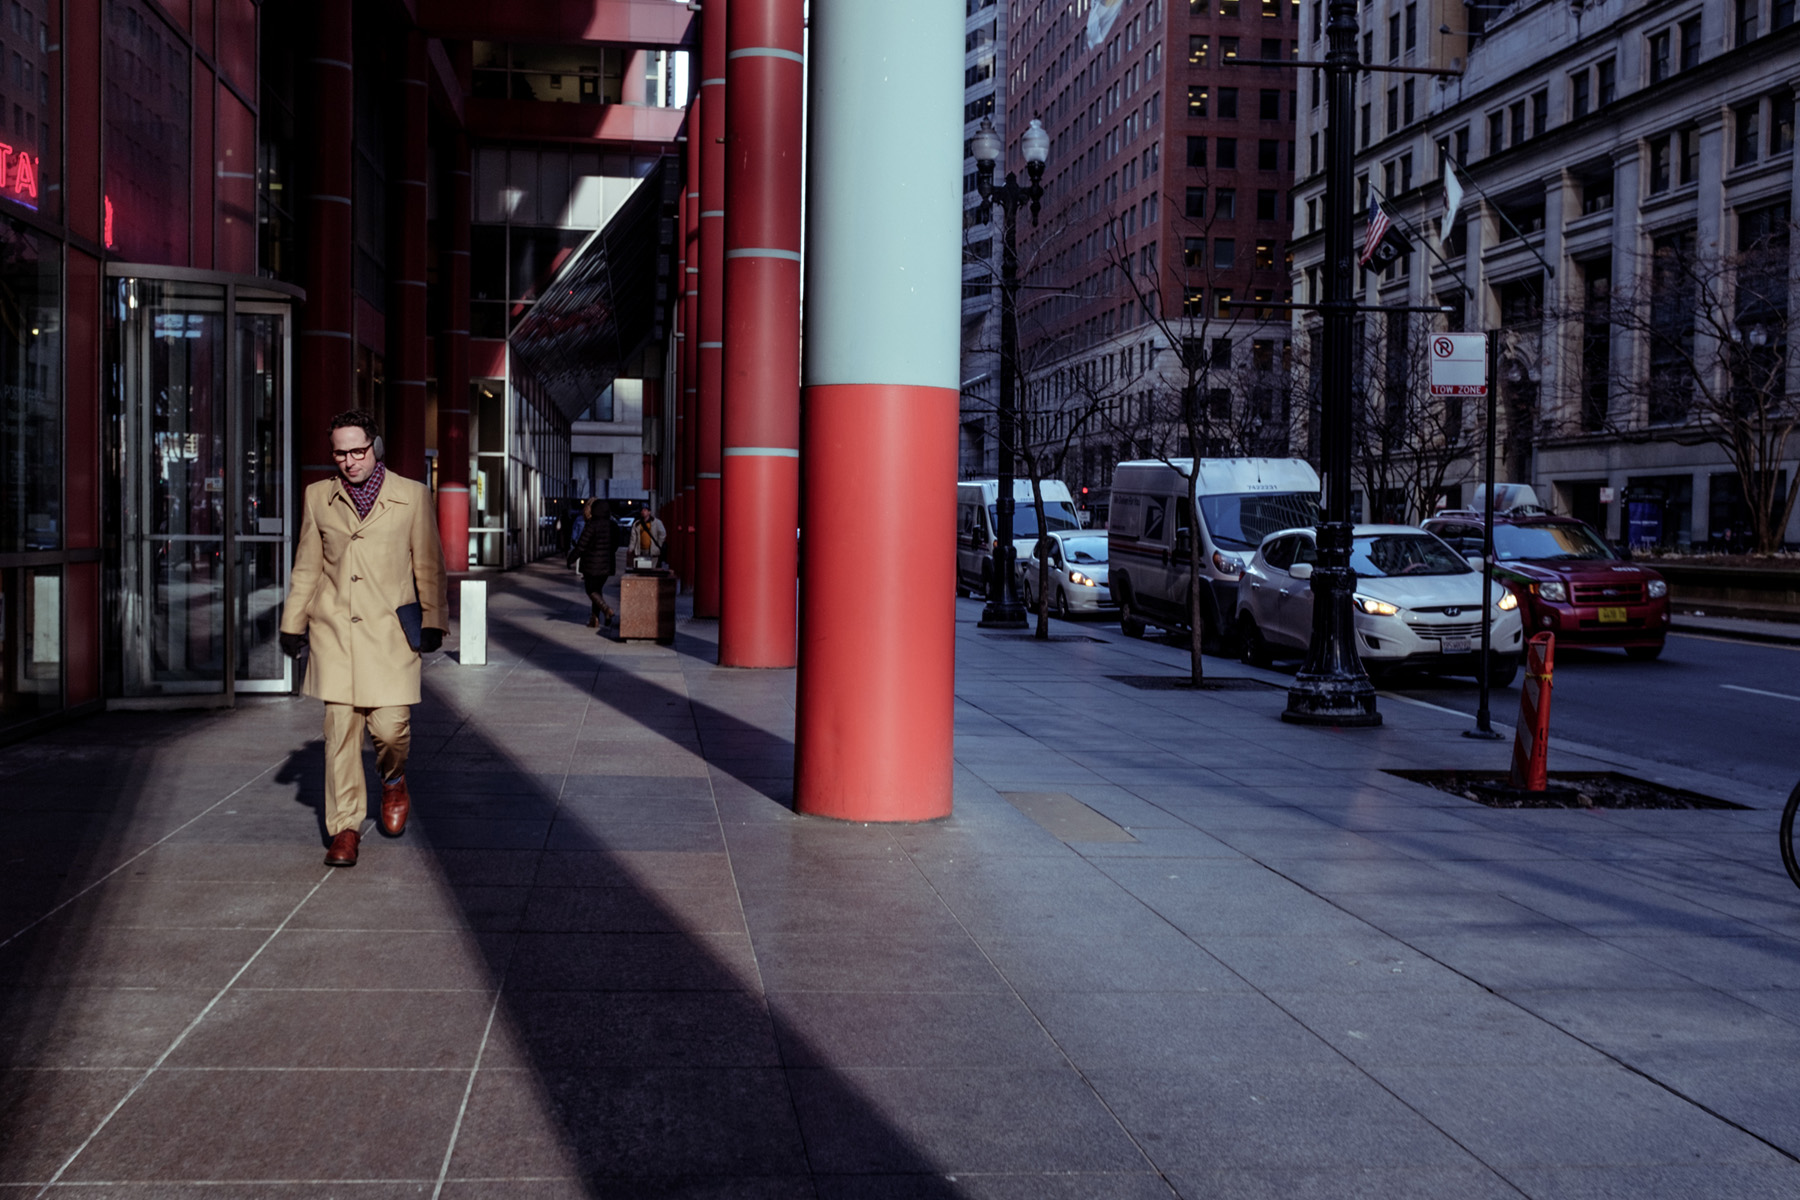 man walking just outside of the Thompson center framed to the right by the red and blue pillars.